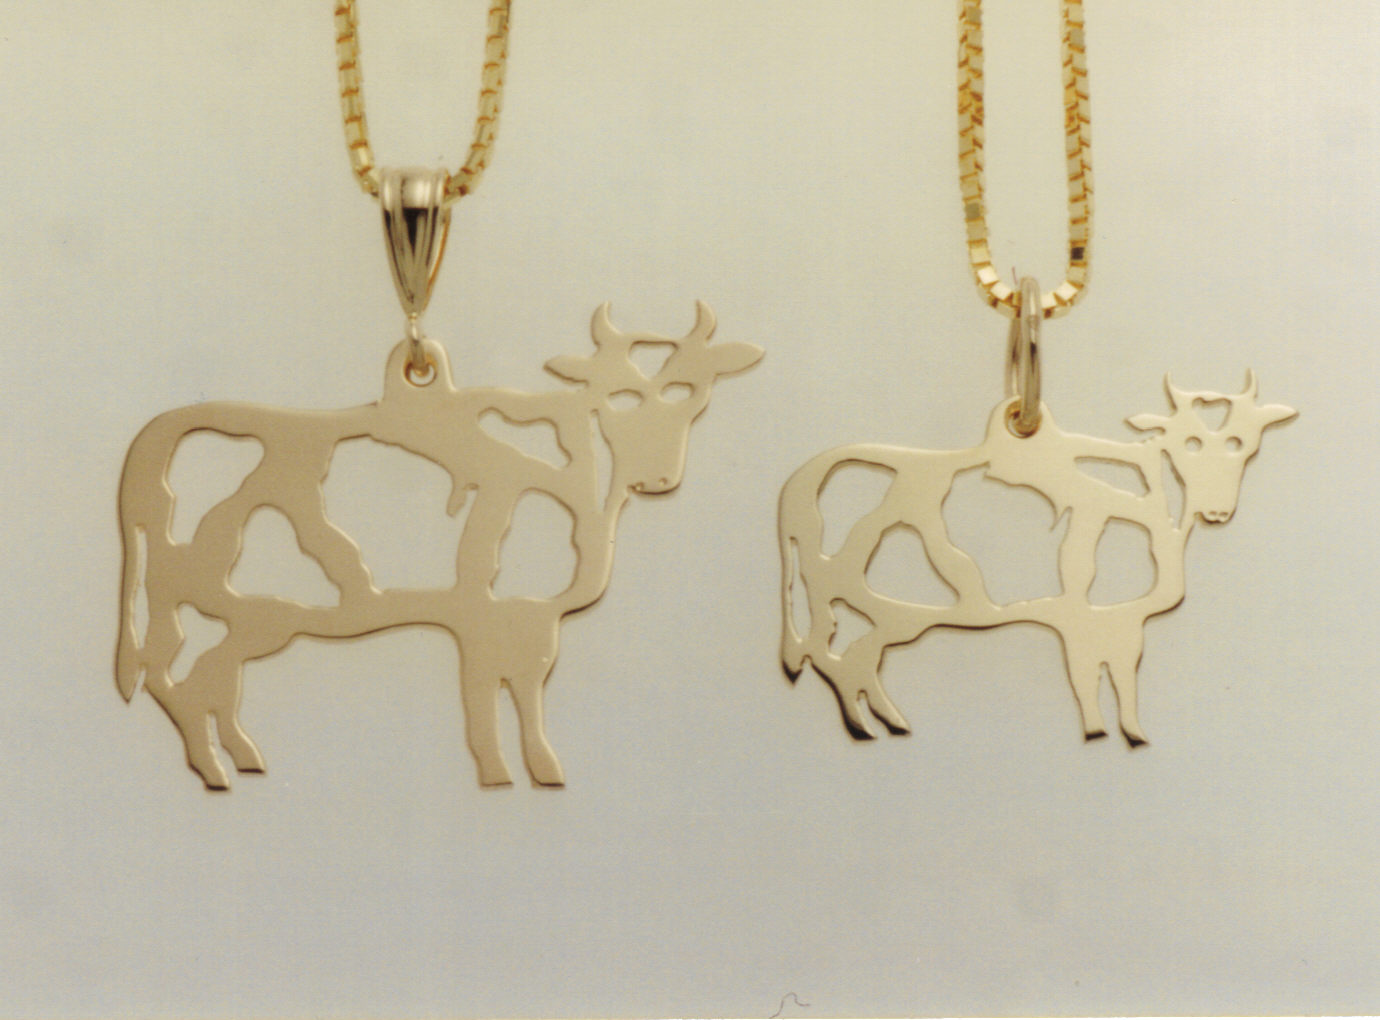 Wis-cow-sin Cow Pendant and Charm